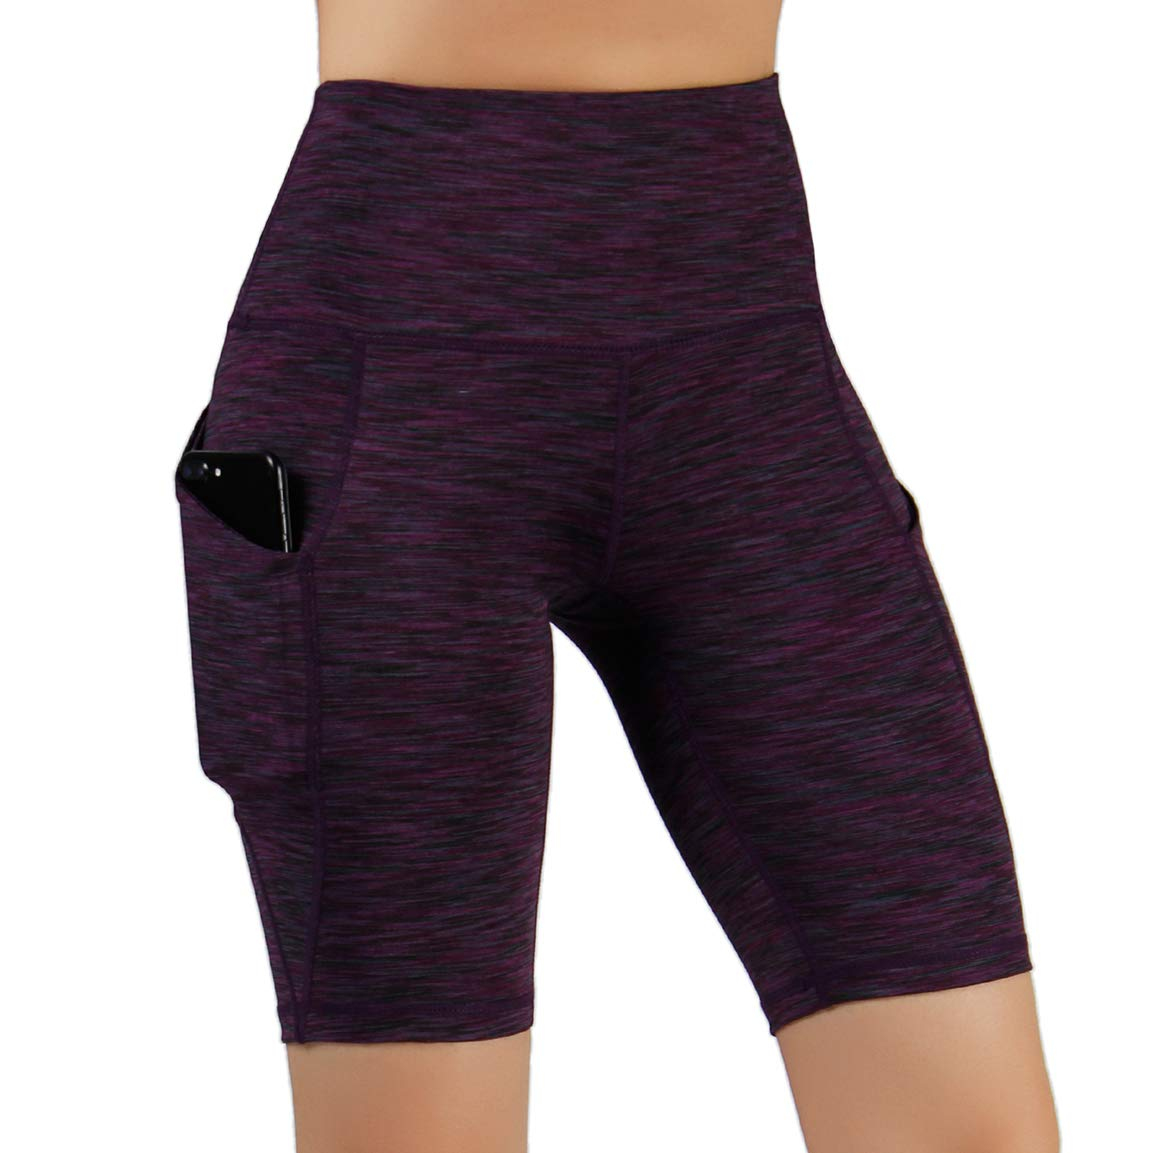 ODODOS High Waist Out Pocket Yoga Short Tummy Control Workout Running Athletic Non See-Through Yoga Shorts,SpaceDyeWine,Small by ODODOS